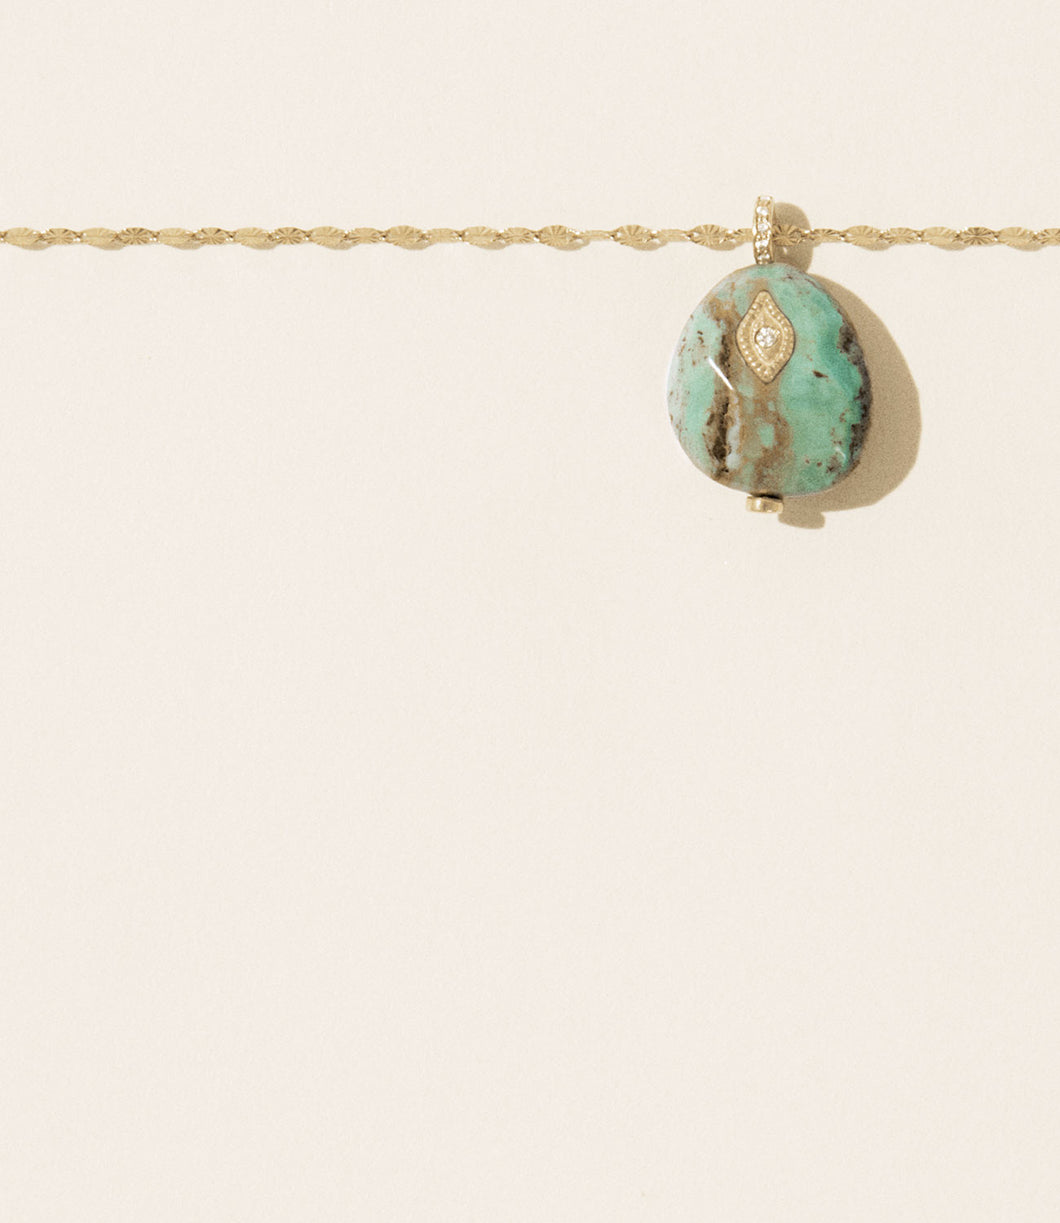 Turquoise Arles Necklace